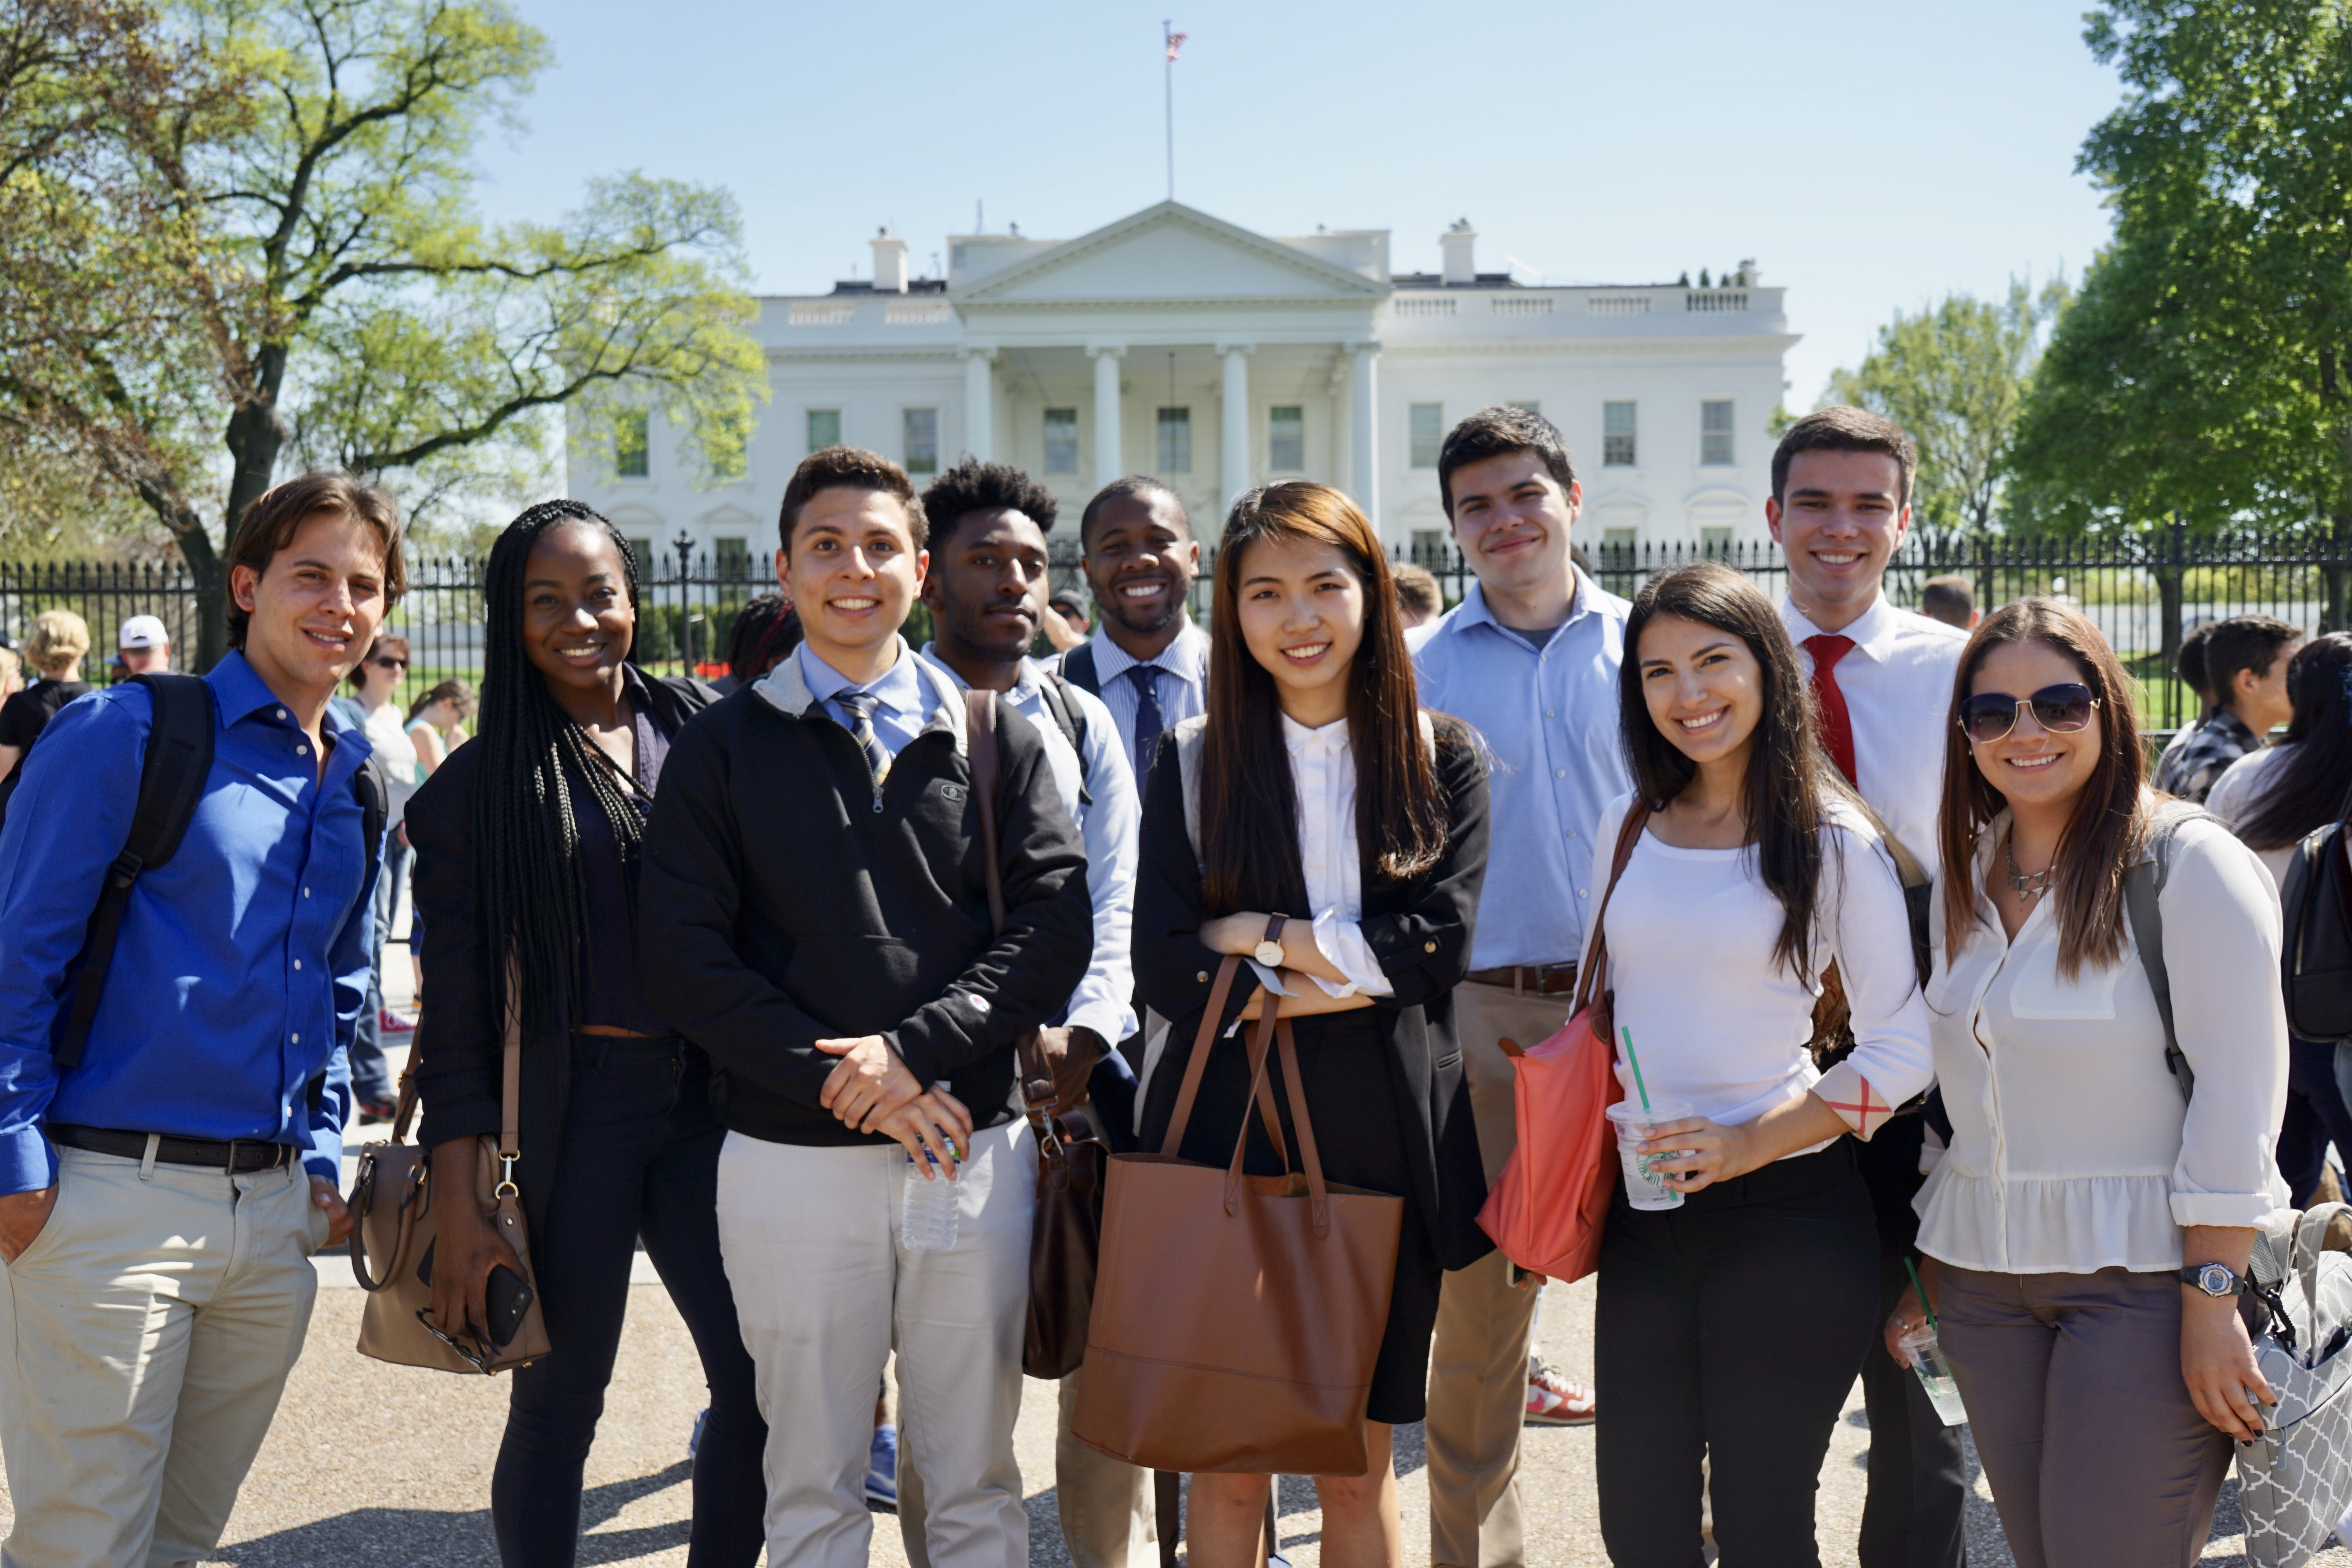 Are you interning in D.C. this summer?